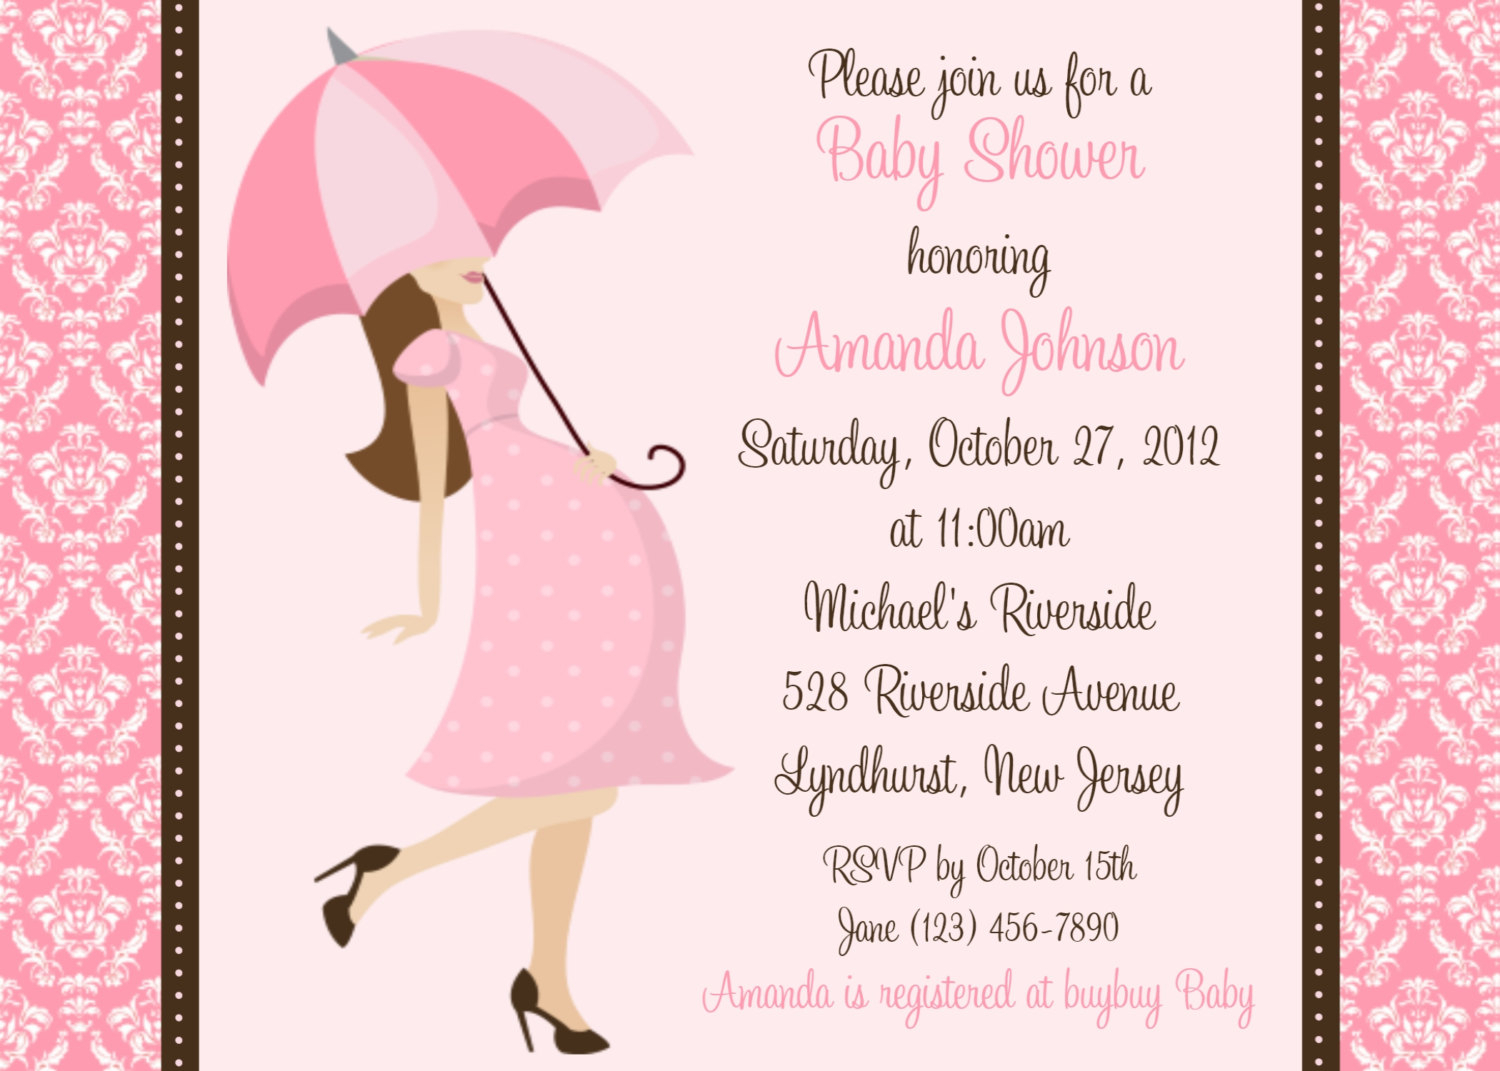 10 Nice Cute Ideas For Baby Shower Invitations real cute diy ideas for baby shower invitations for girls 2020